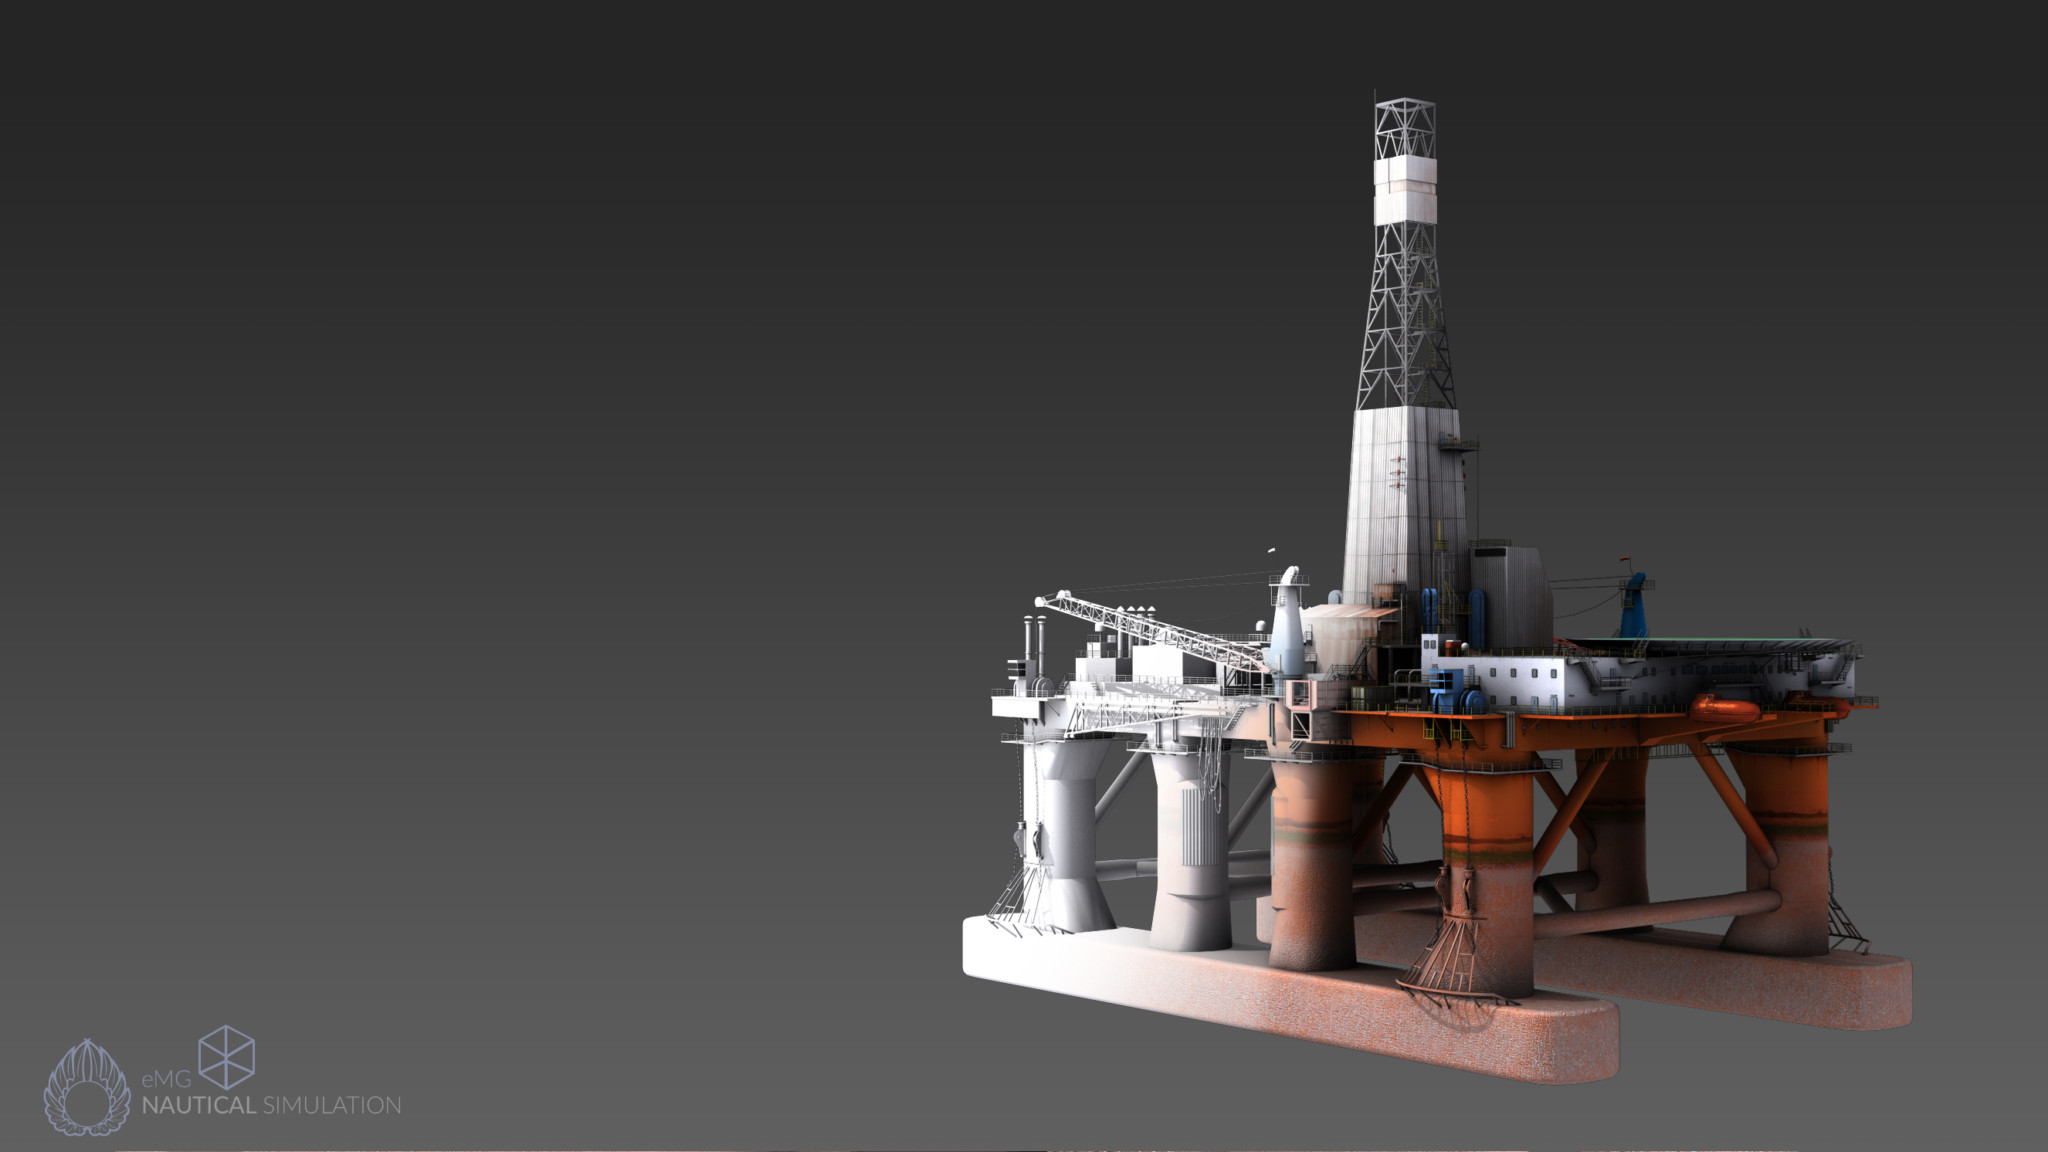 Oil_Drilling_Rig_Render_01